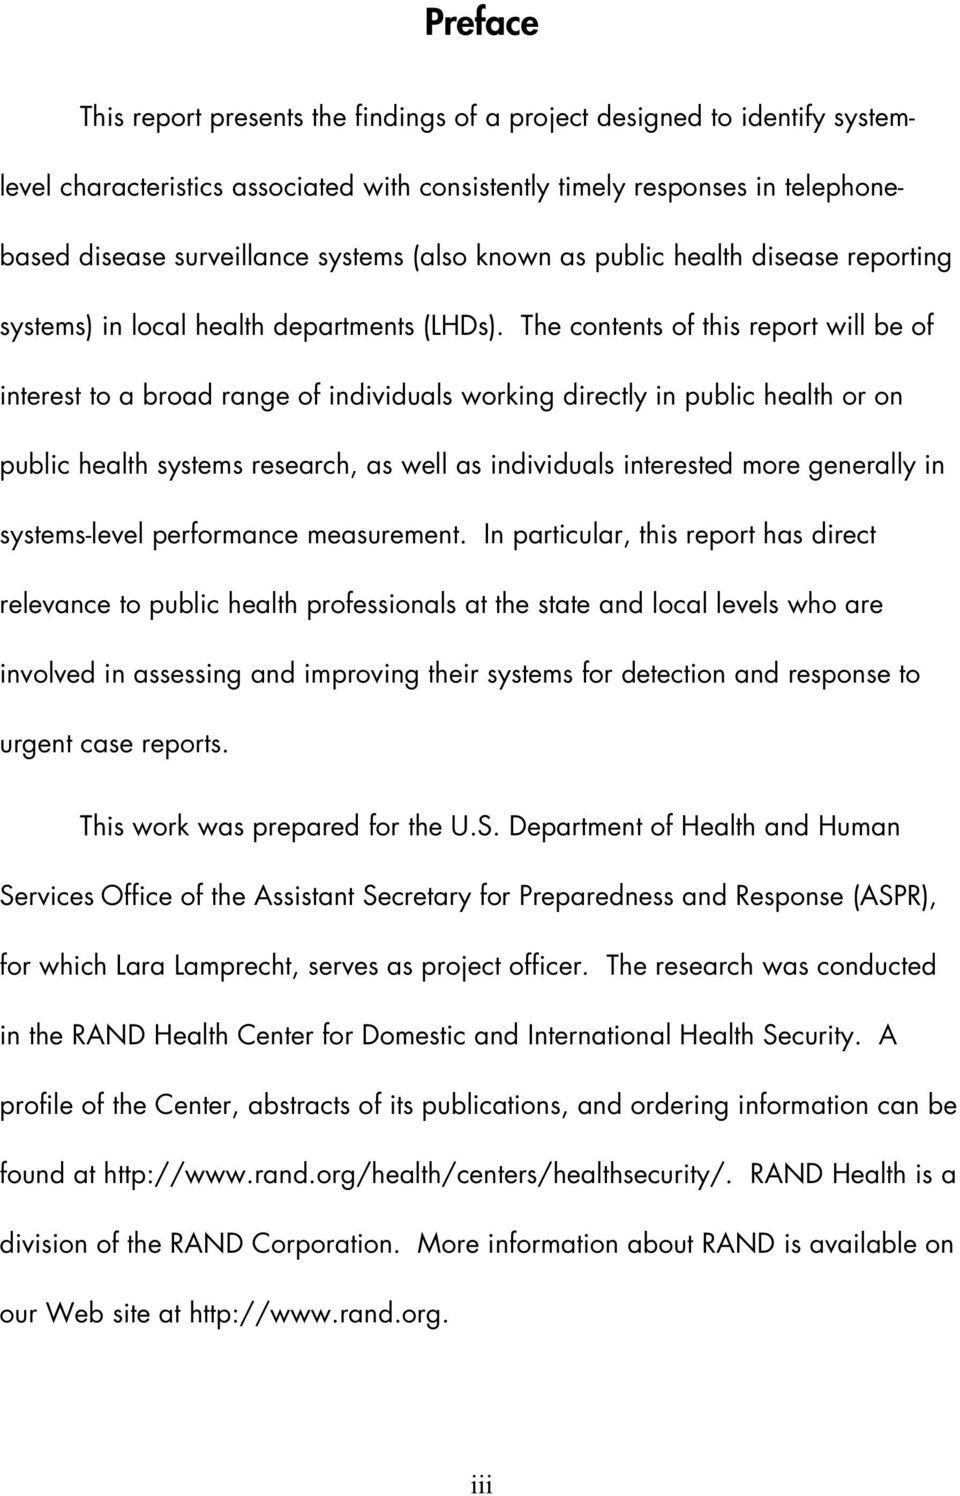 The contents of this report will be of interest to a broad range of individuals working directly in public health or on public health systems research, as well as individuals interested more